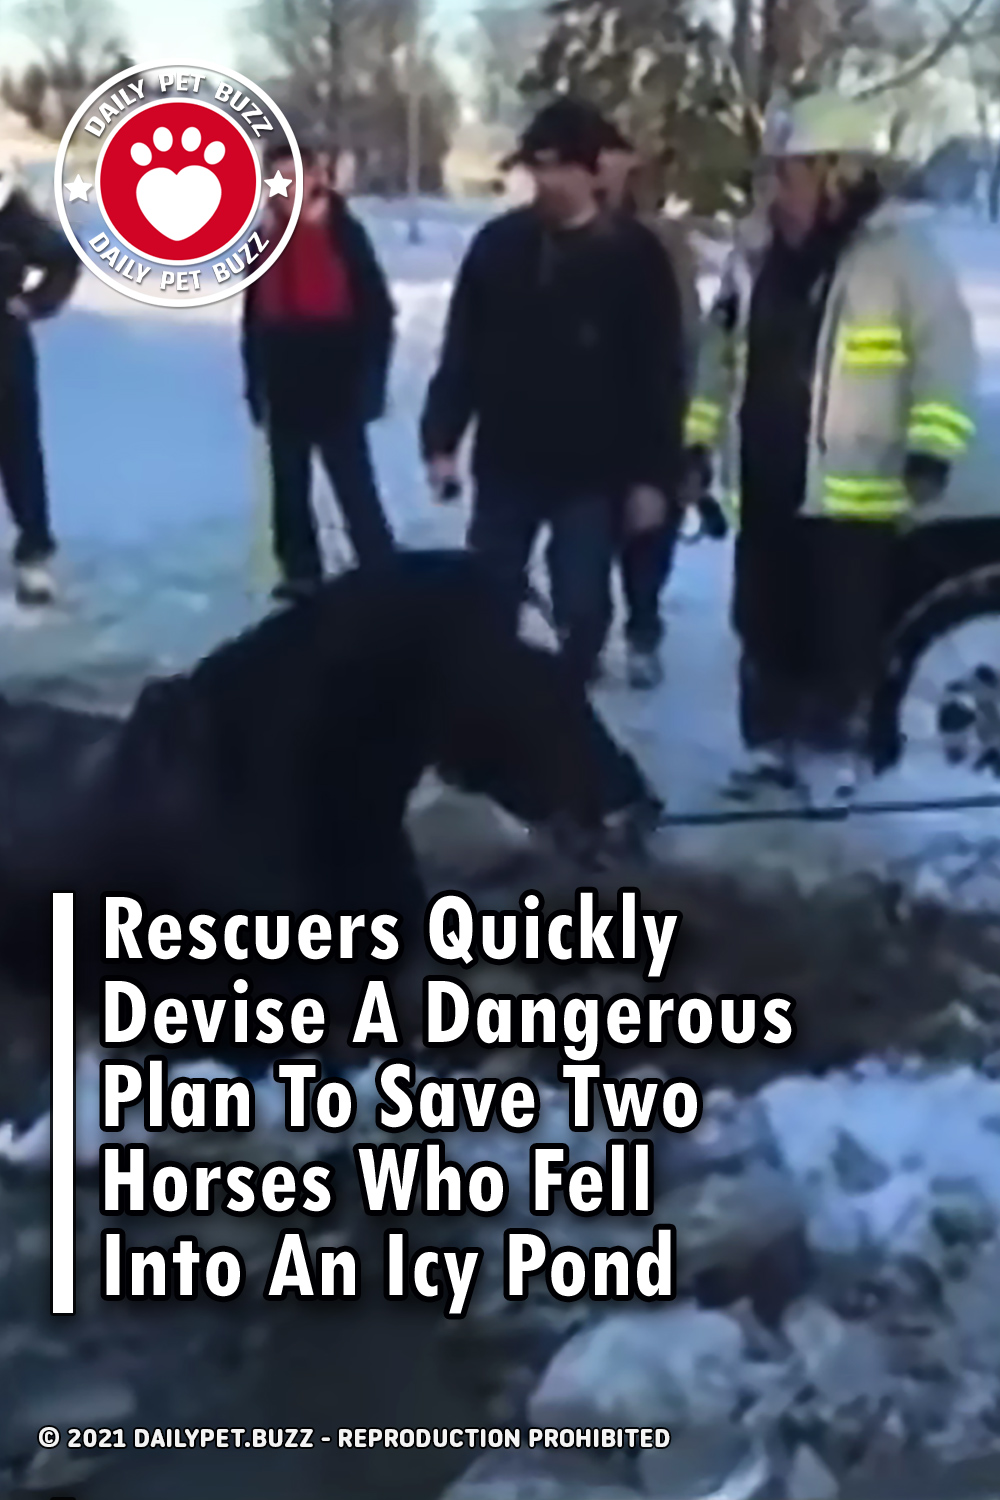 Rescuers Quickly Devise A Dangerous Plan To Save Two Horses Who Fell Into An Icy Pond